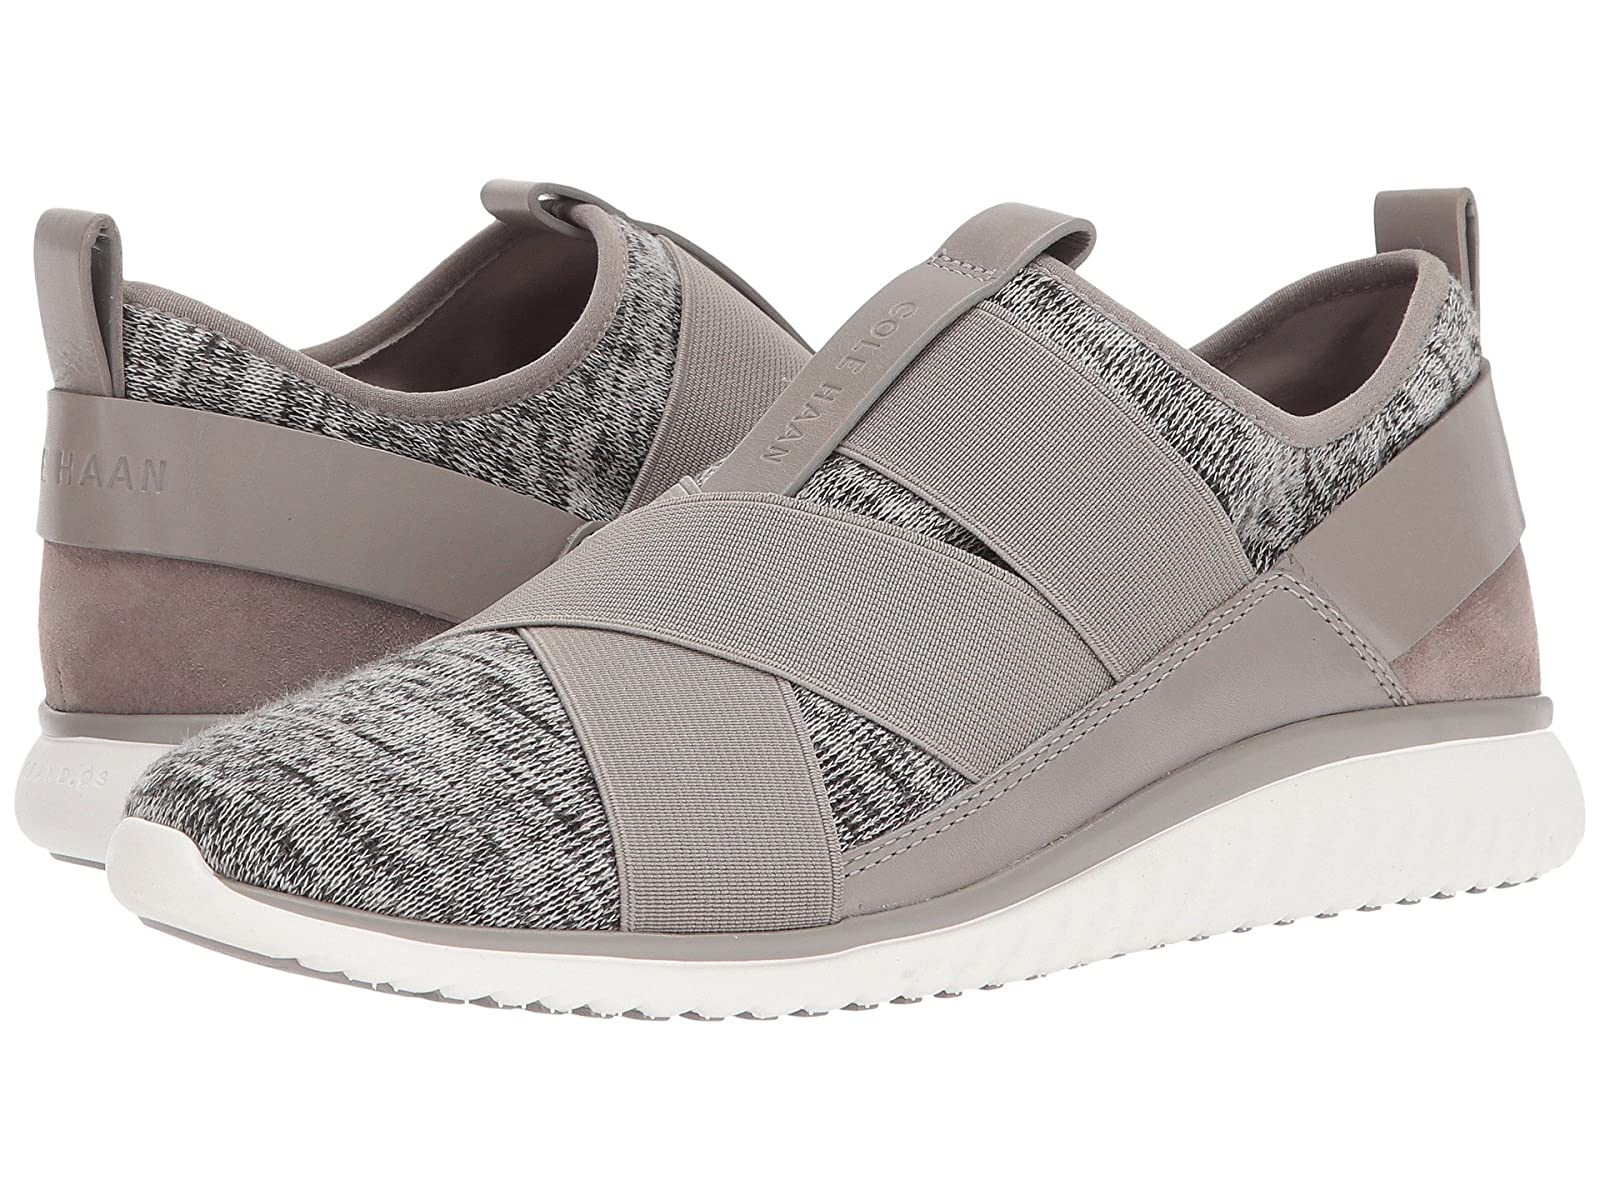 Cole Haan Studiogrand Knit TrainerCheap and distinctive eye-catching shoes